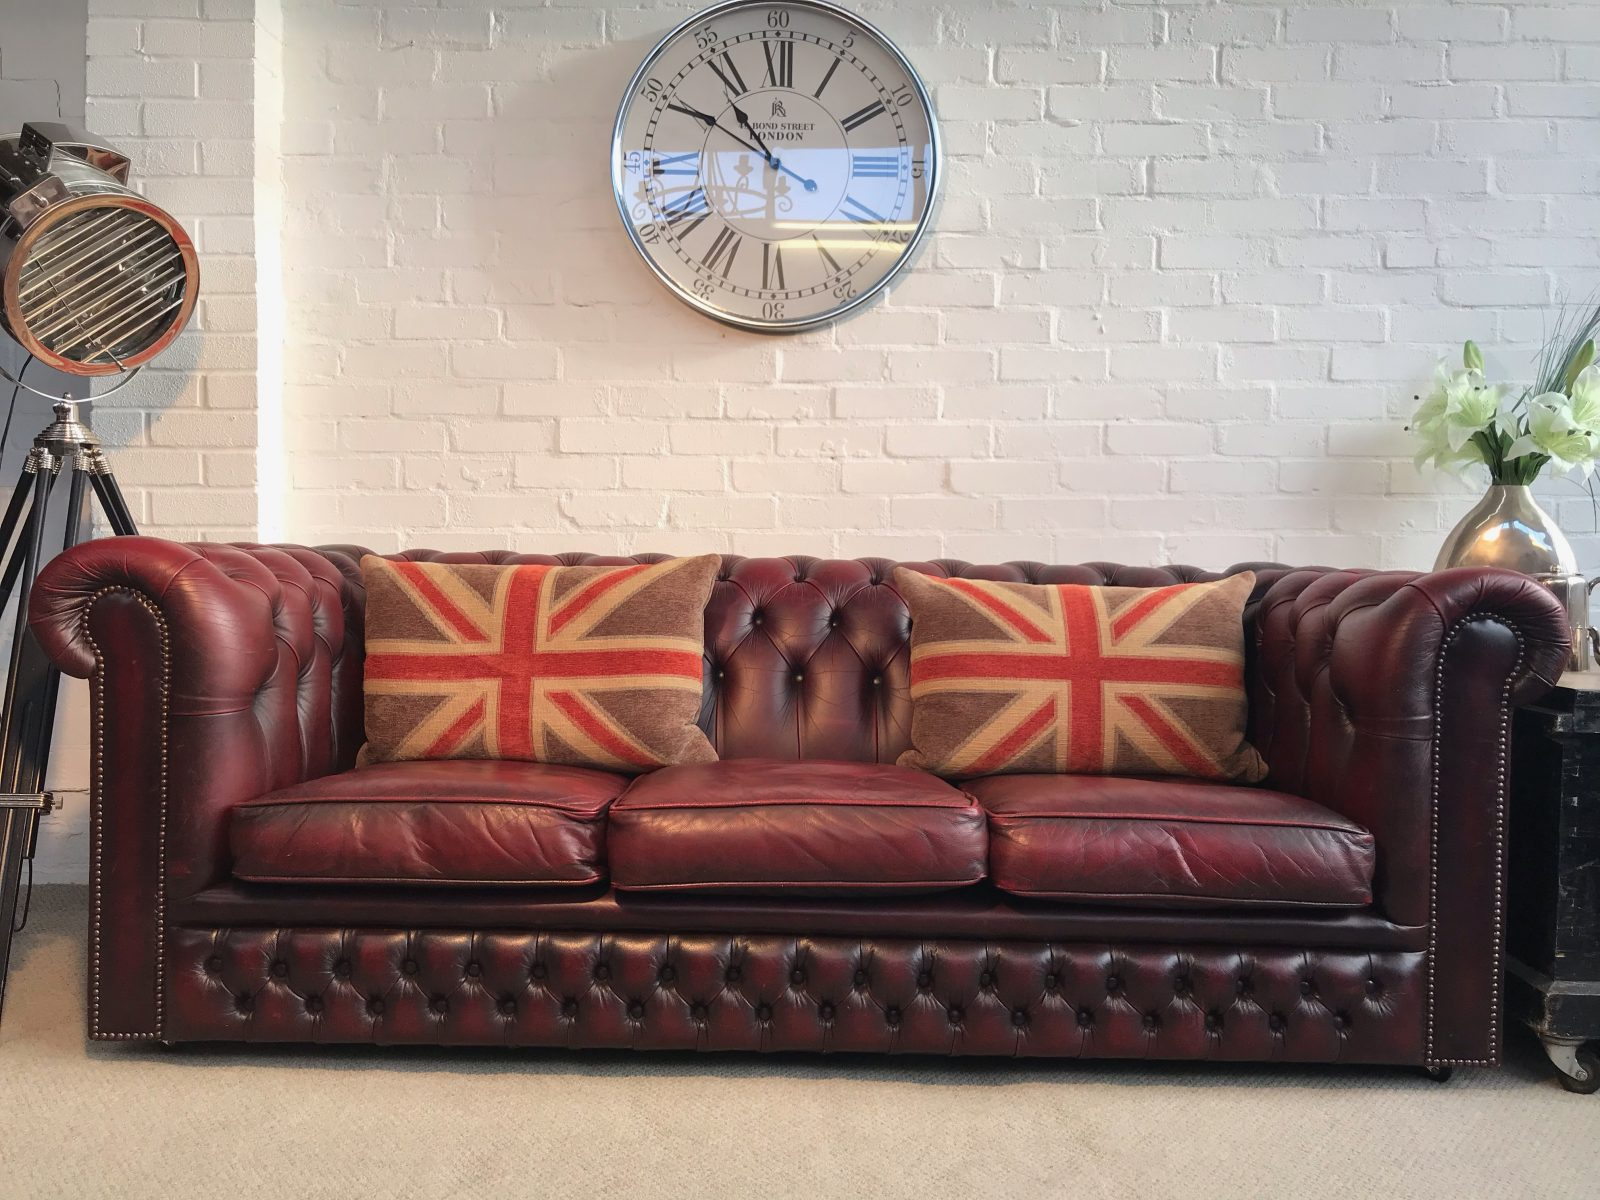 Vintage Antique Red 3 Seater Chesterfield Sofa.